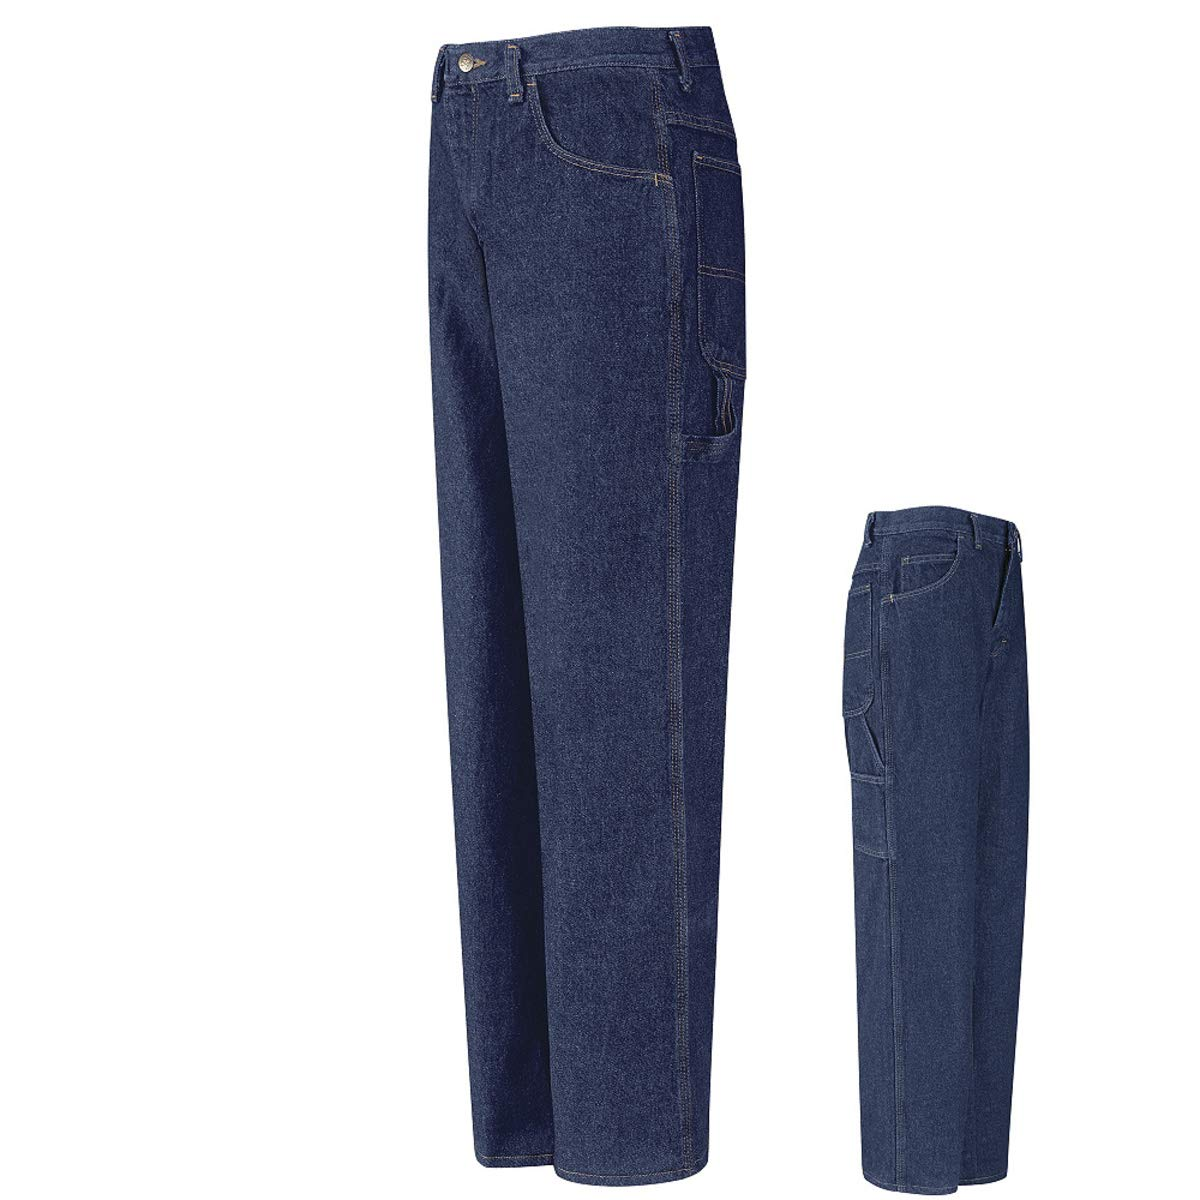 Red Kap 46 X 32 Blue 13.5 Ounce Heavy Weight Cotton Jeans With Zipper Closure